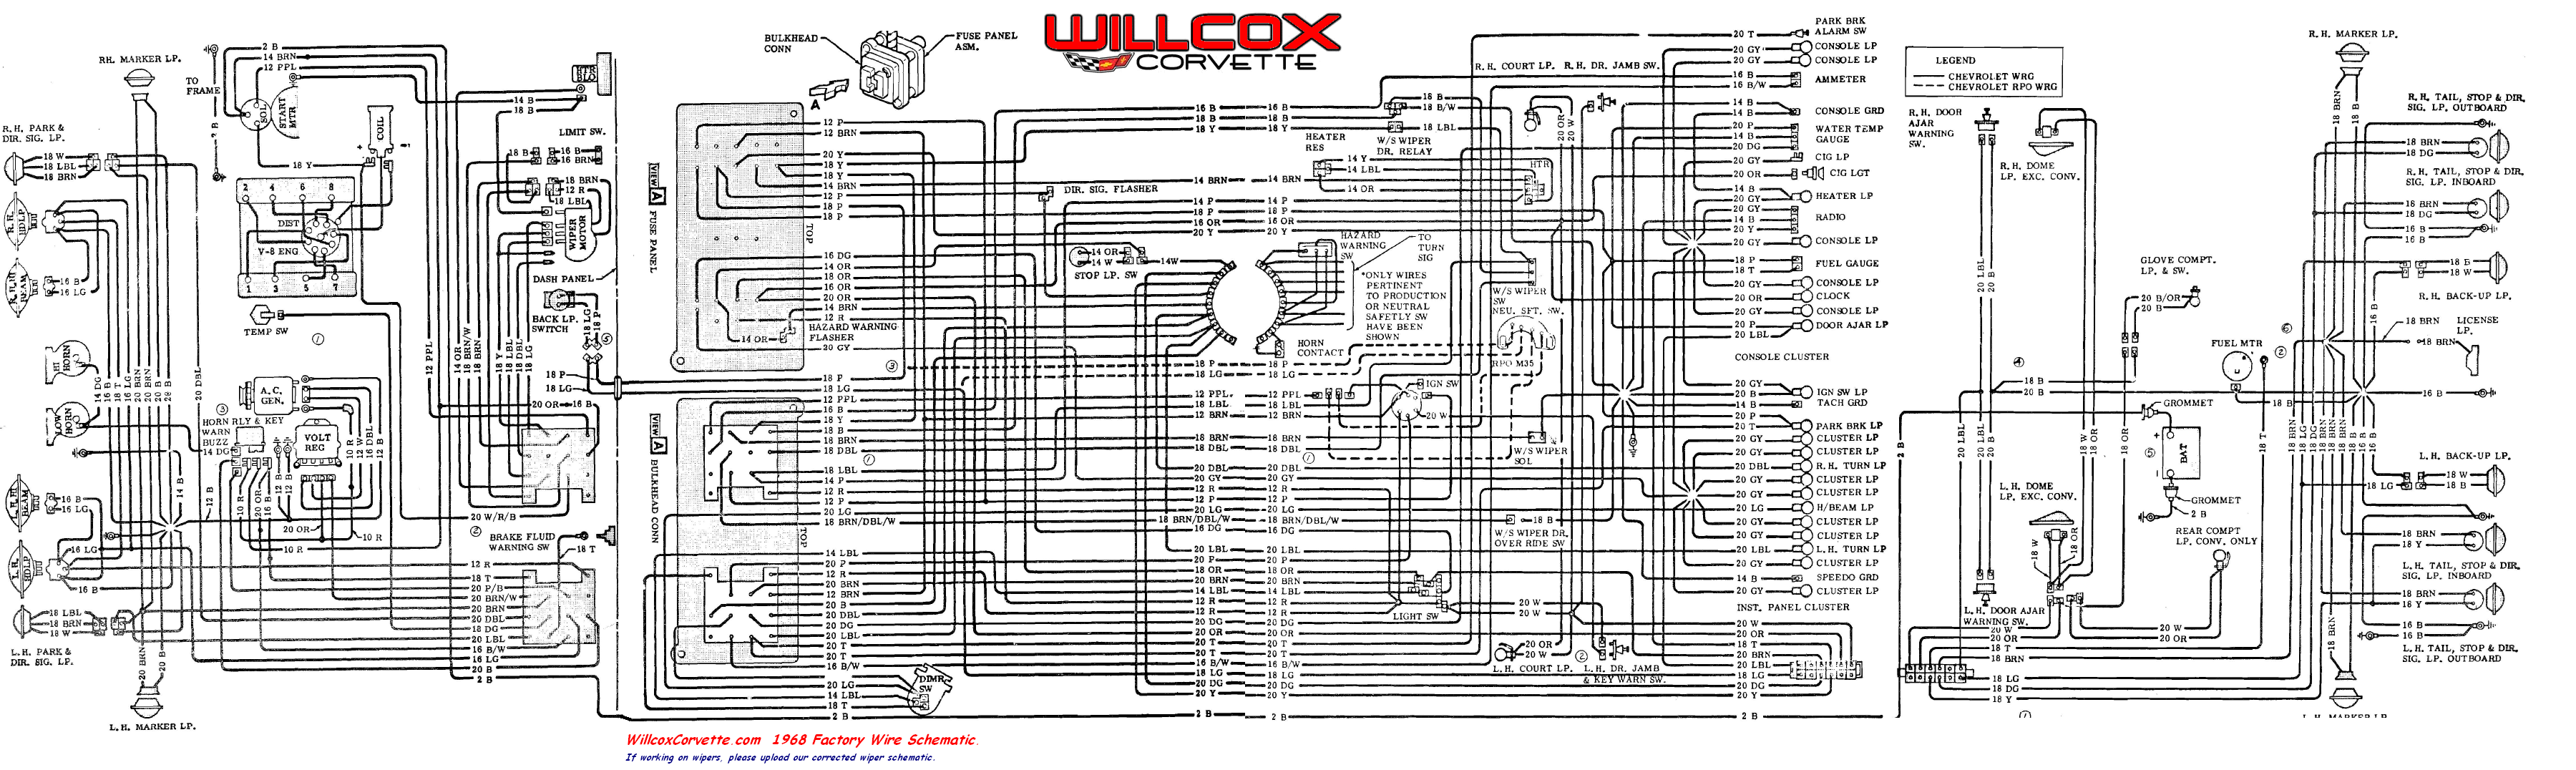 68 wire tracer wiring diagram for 2004 corvette readingrat net 75 Corvette Engine Wiring at gsmx.co